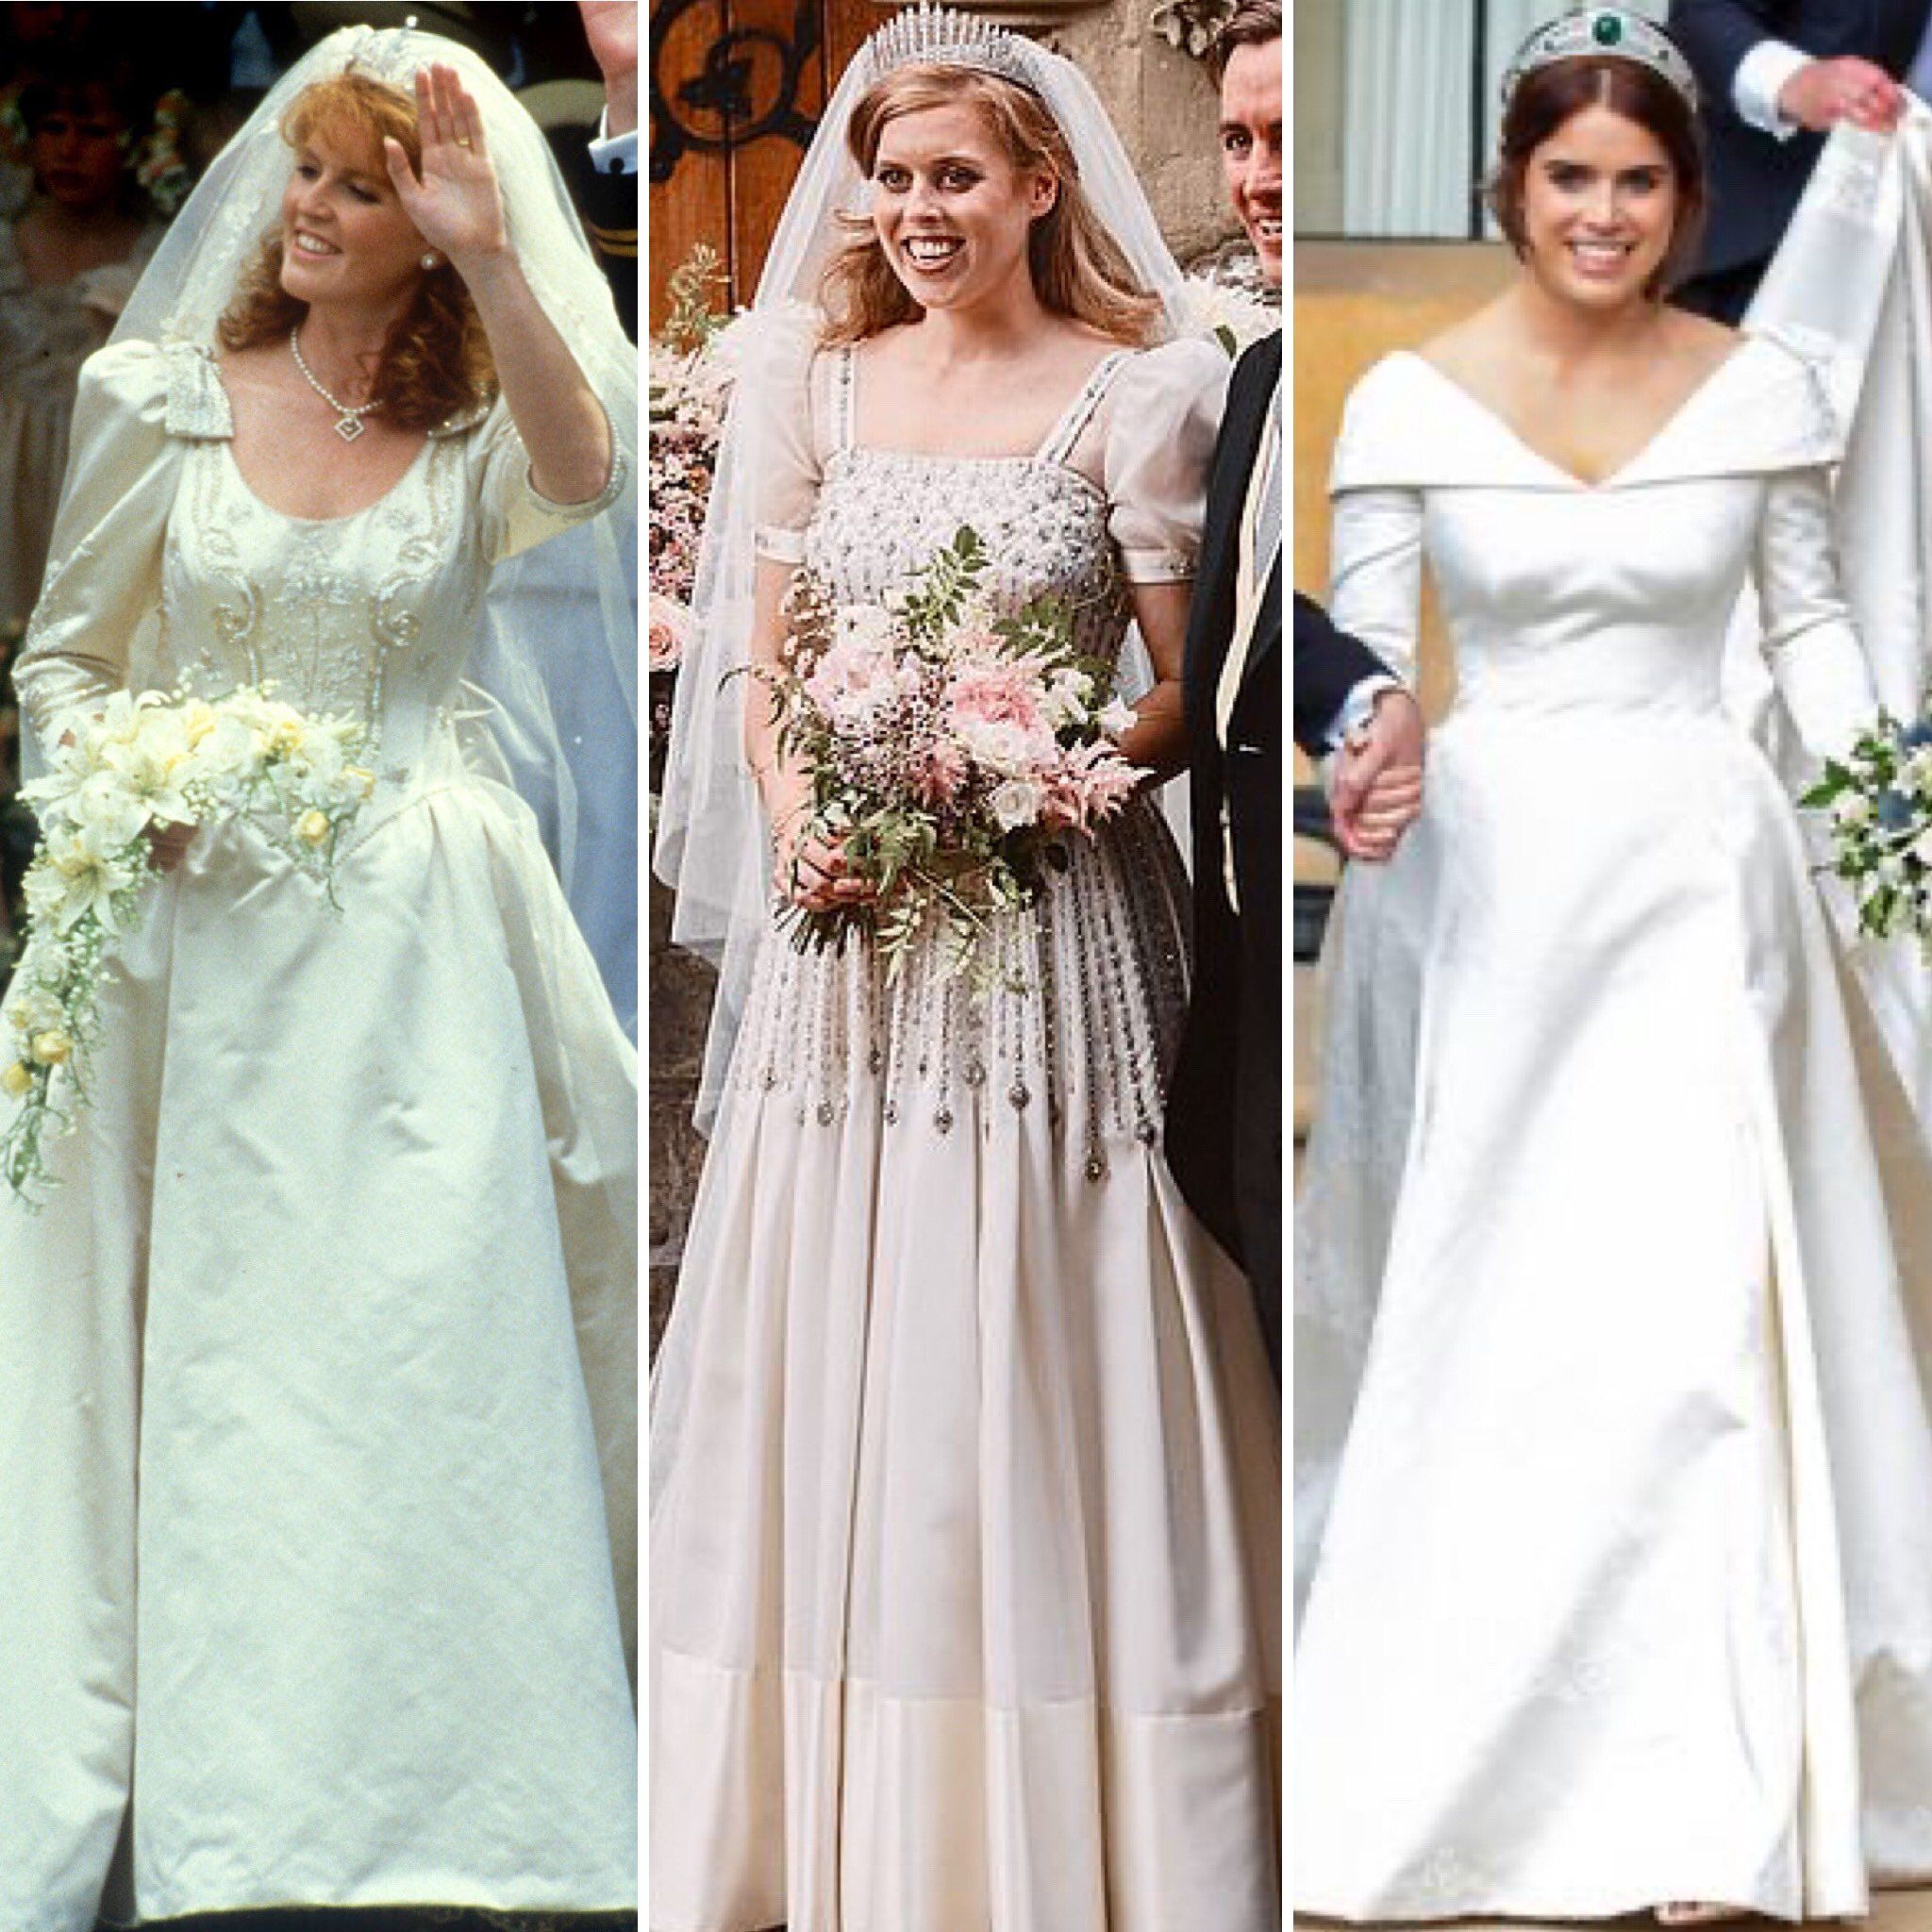 Kelly Mathews On Twitter In 2020 Royal Wedding Gowns Royal